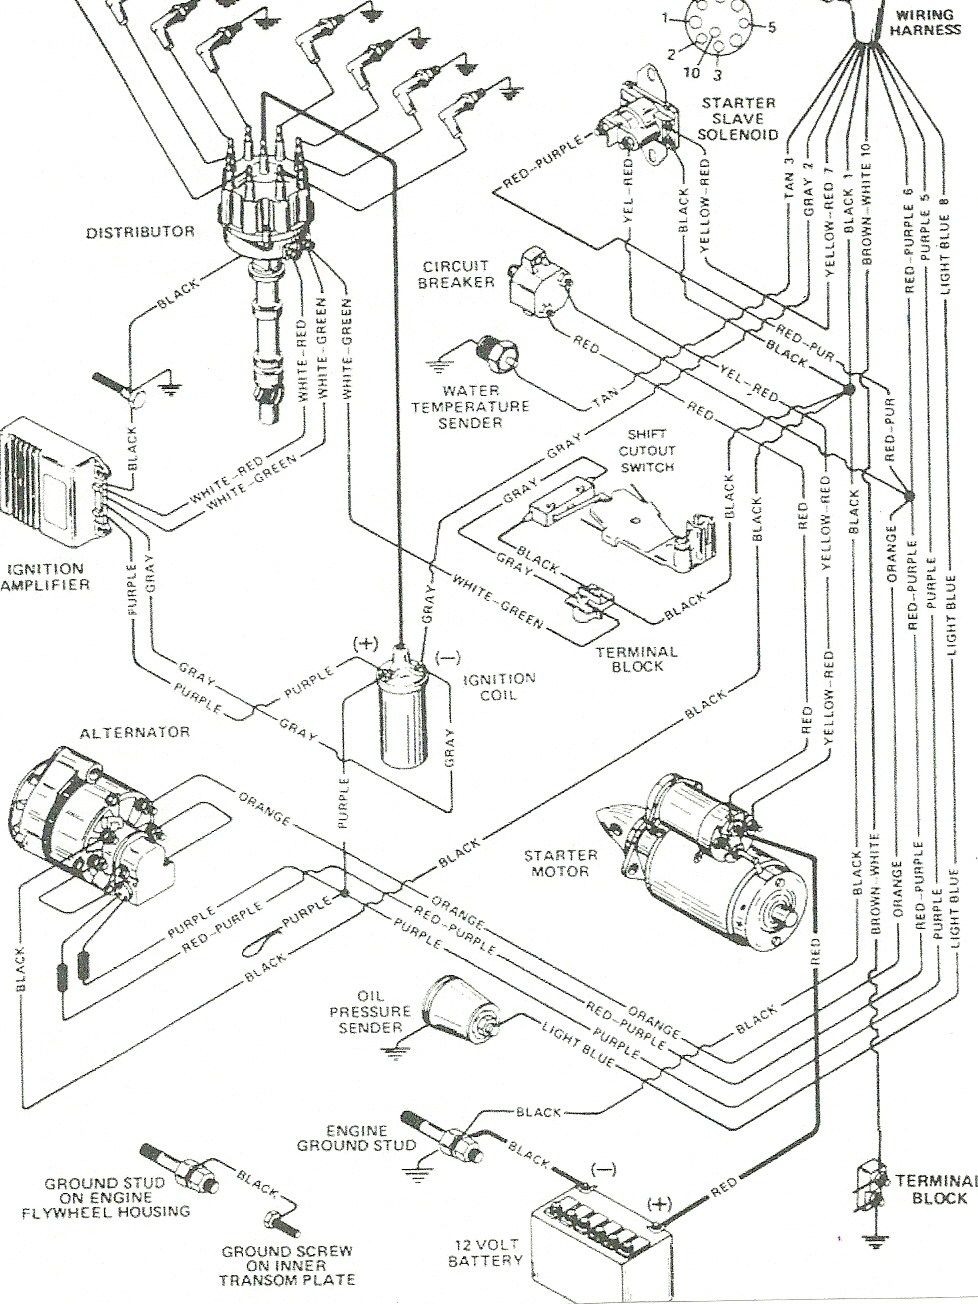 small resolution of mercruiser 30 wiring diagram wiring diagram mercruiser 140 mercruiser alternator wiring diagram mercruiser 30 wiring